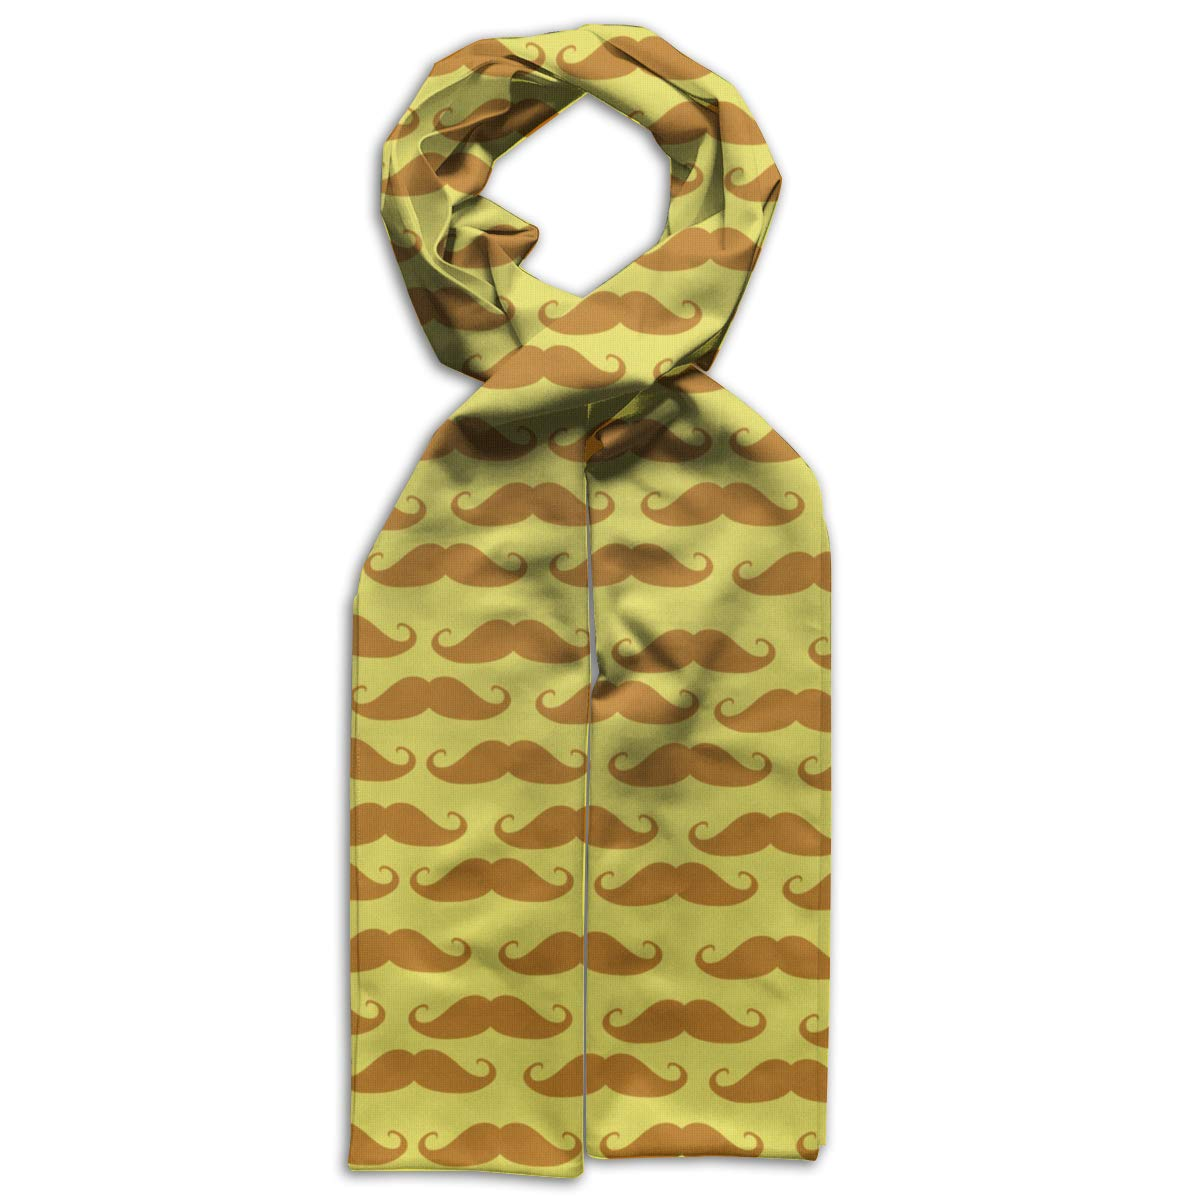 Cute Beard Kids Printed Scarf Soft Winter Infinity Scarf Warmer Travel Scarf For Kids Perfect Birthday Gift